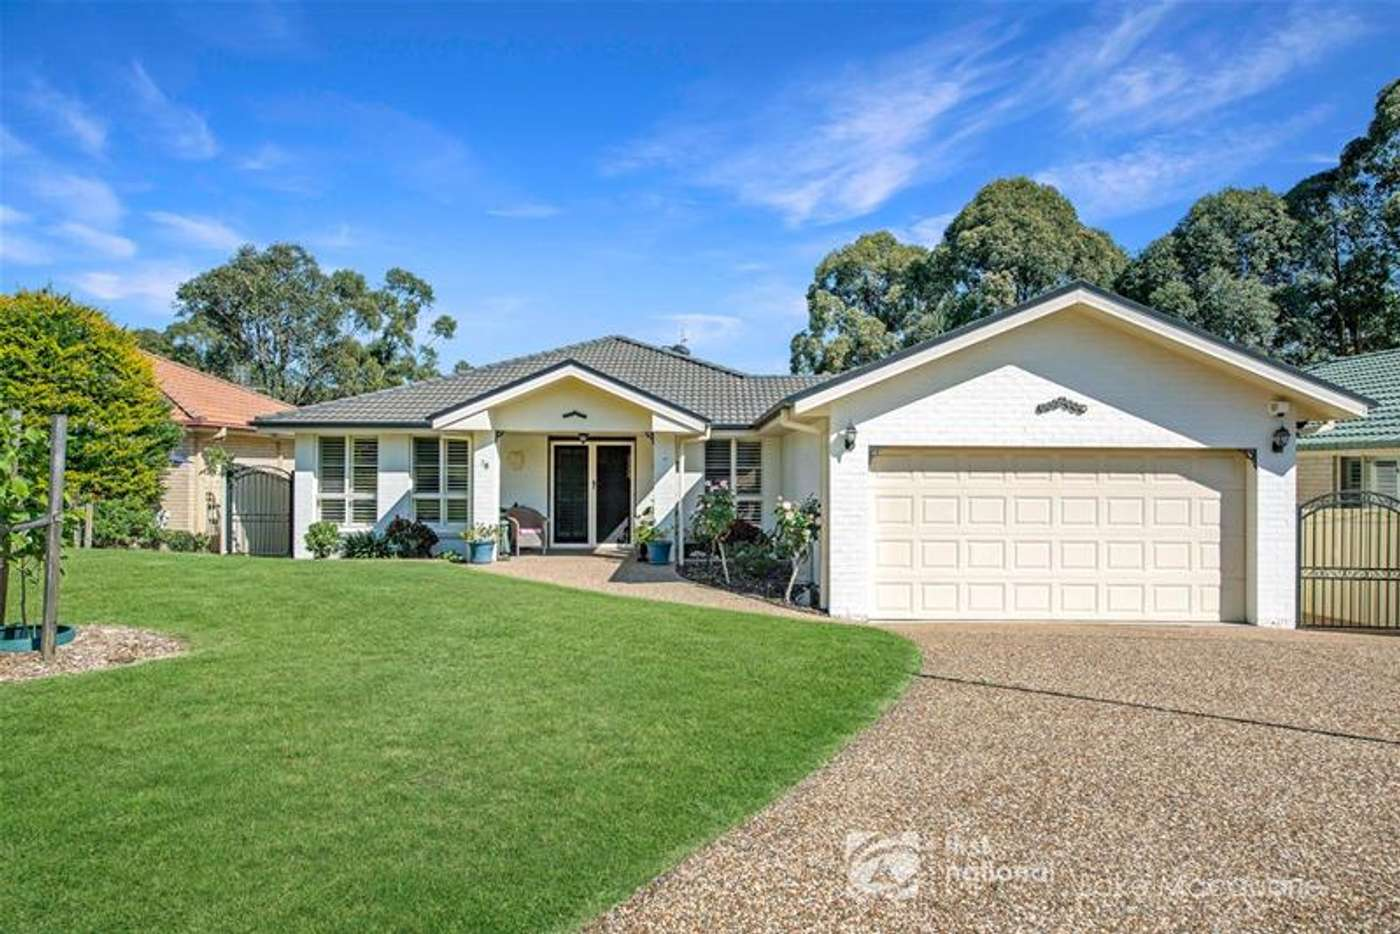 Main view of Homely house listing, 28 Condor Circuit, Lambton NSW 2299